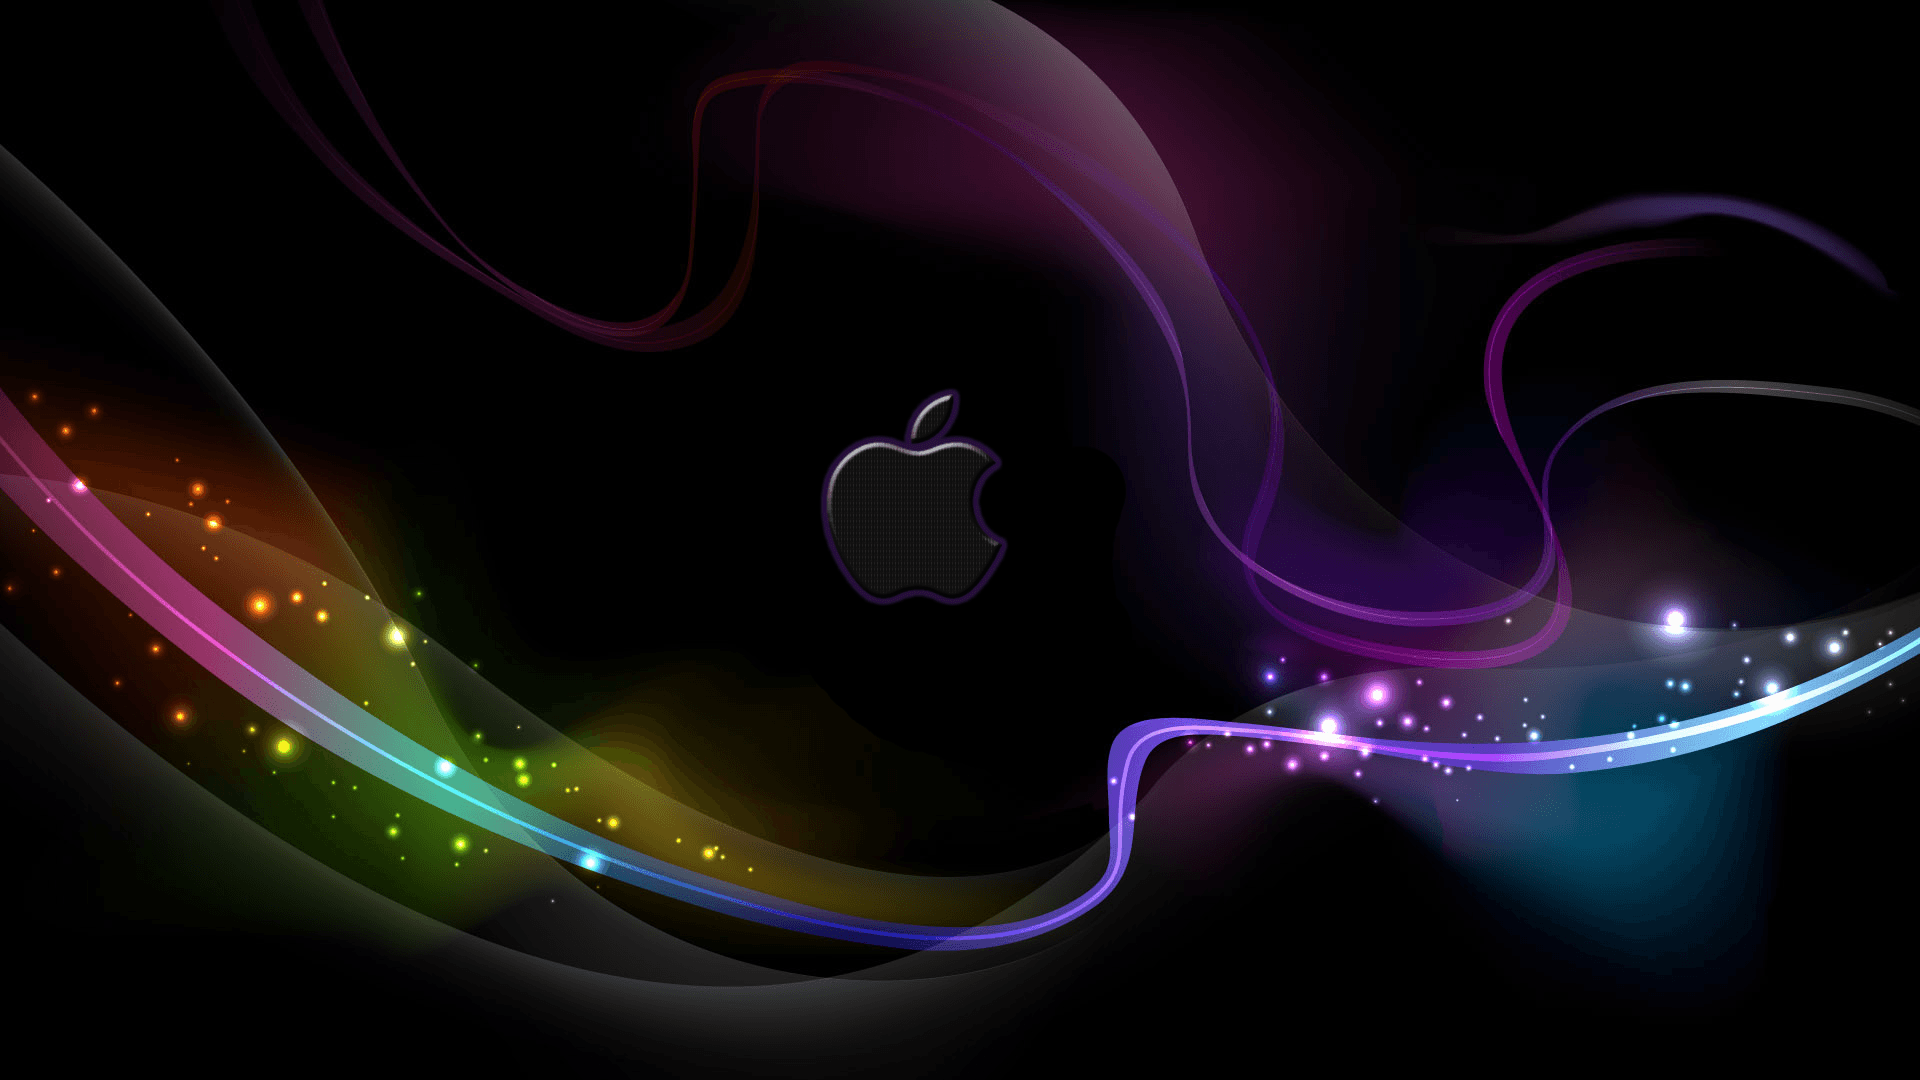 Apple Abstract Wallpapers Wallpaper Cave